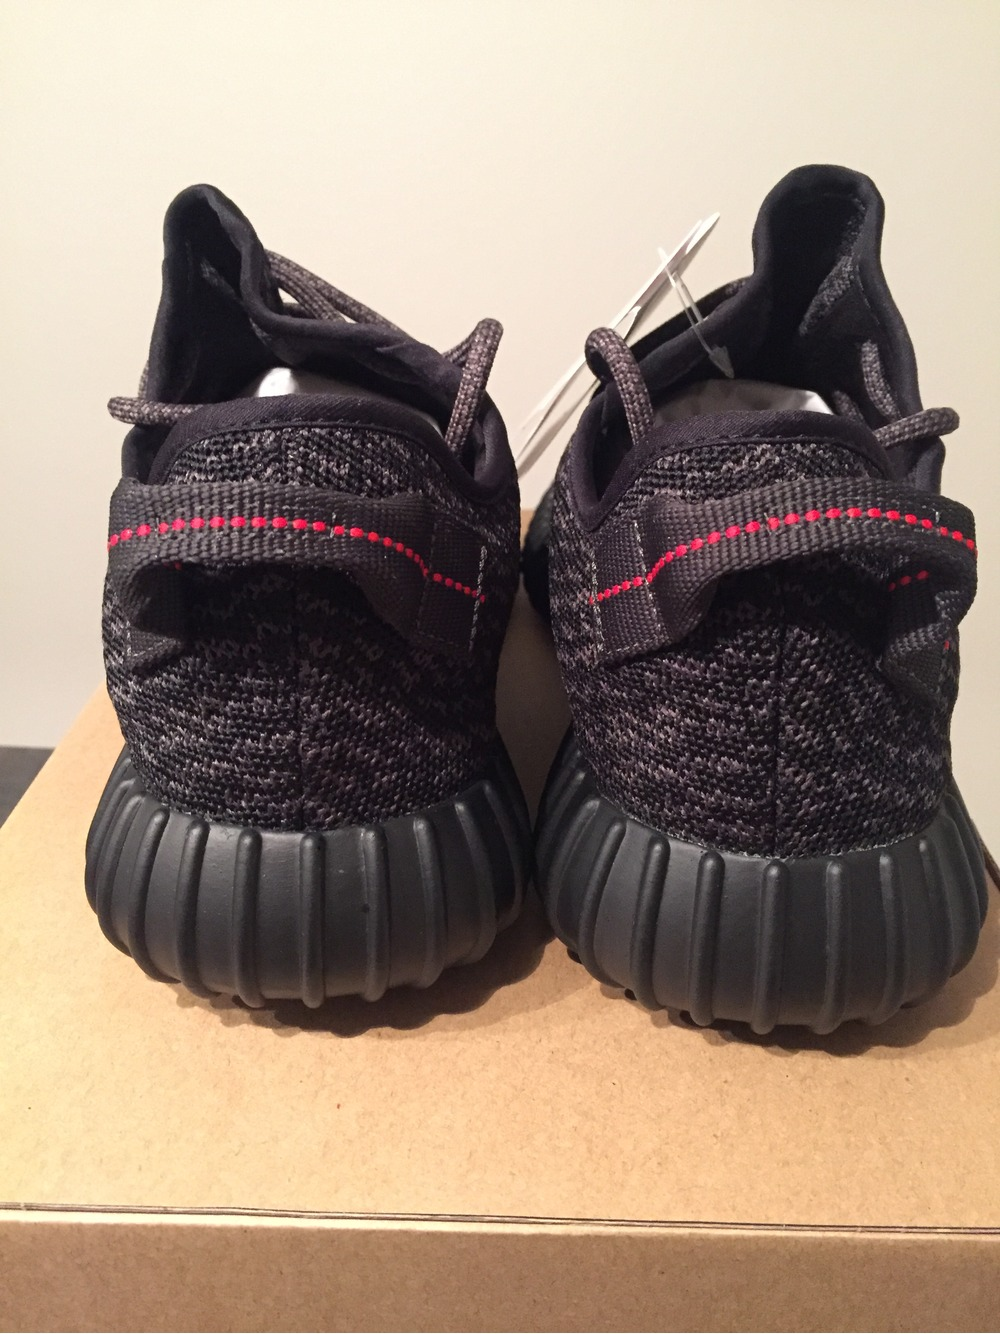 best authentic 7d7f8 8f7b5 Adidas Yeezy 350 Boost Pirate Black 2.0